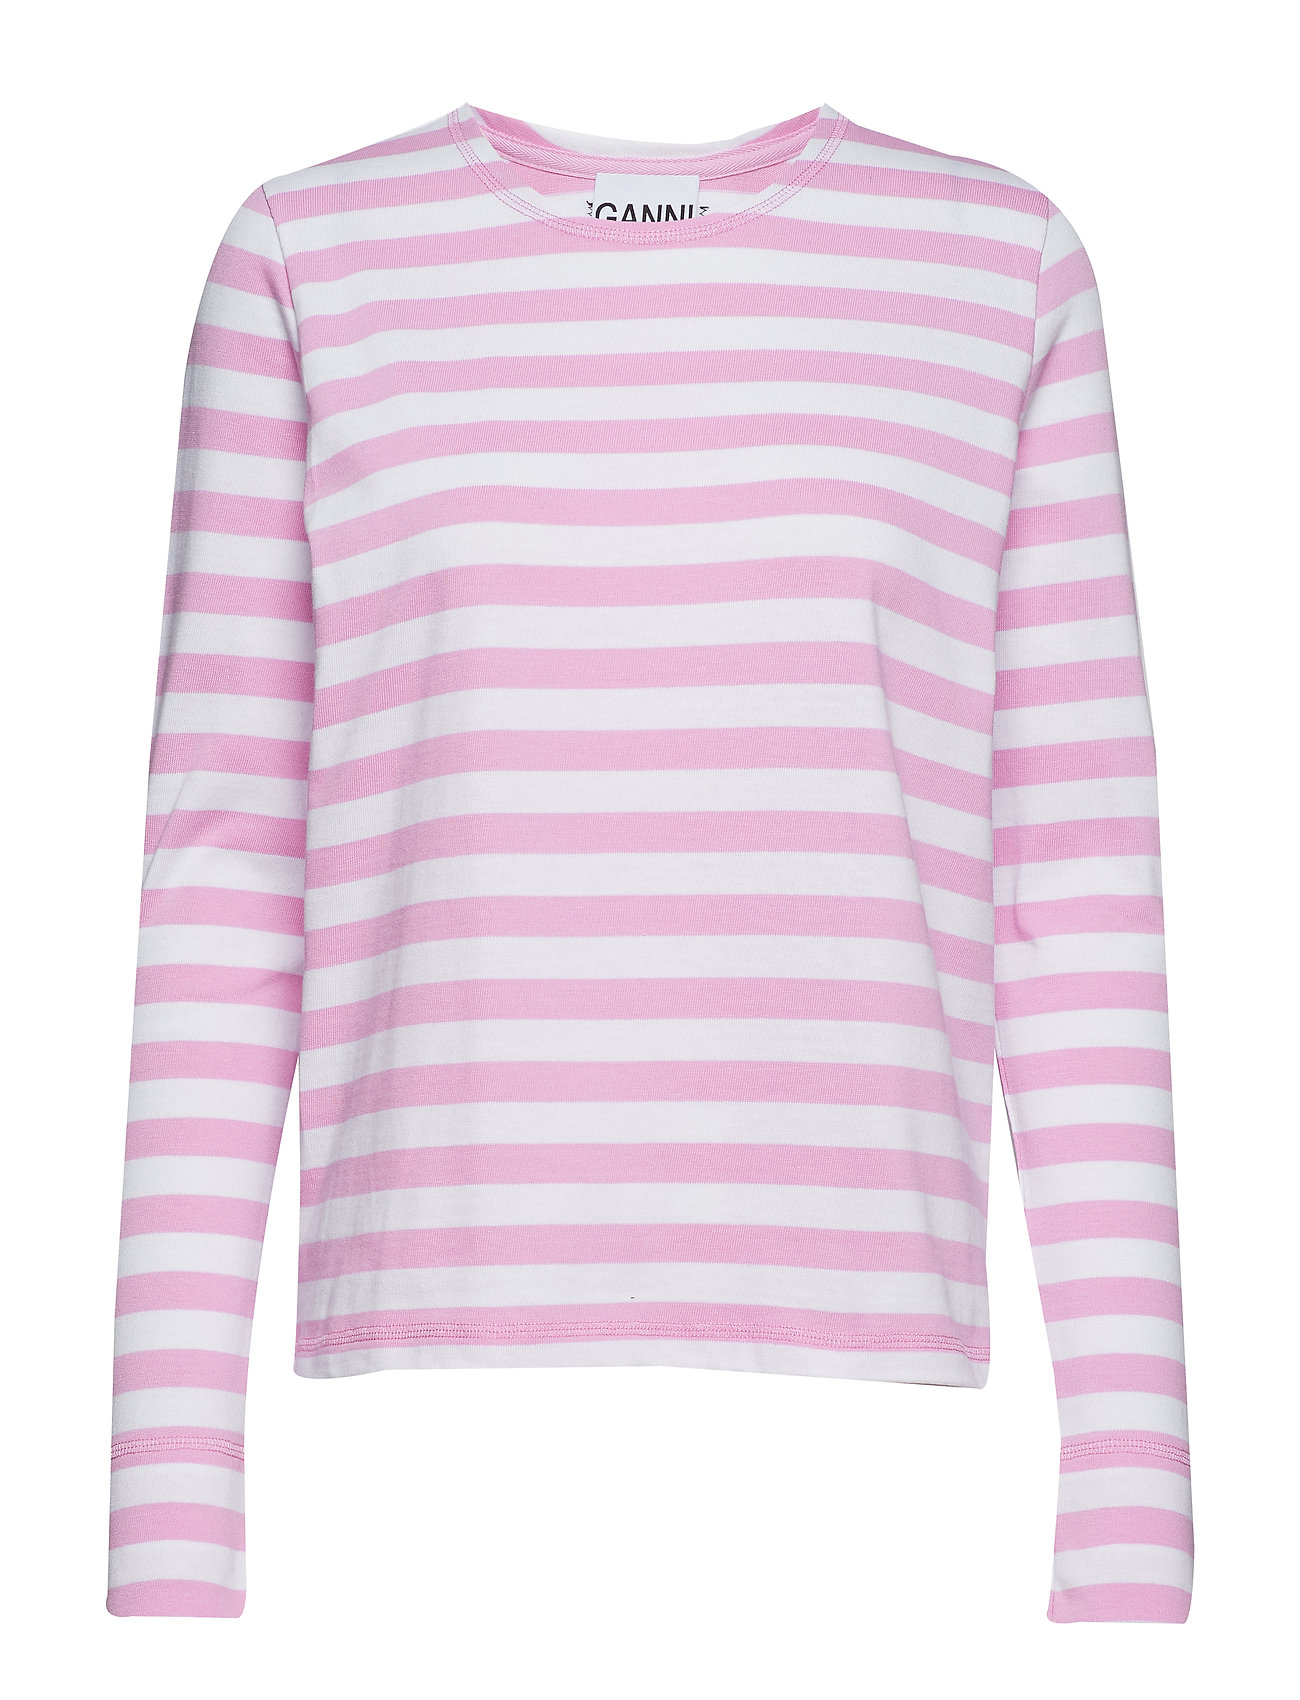 Ganni Striped Cotton Jersey - MOONLIGHT MAUVE